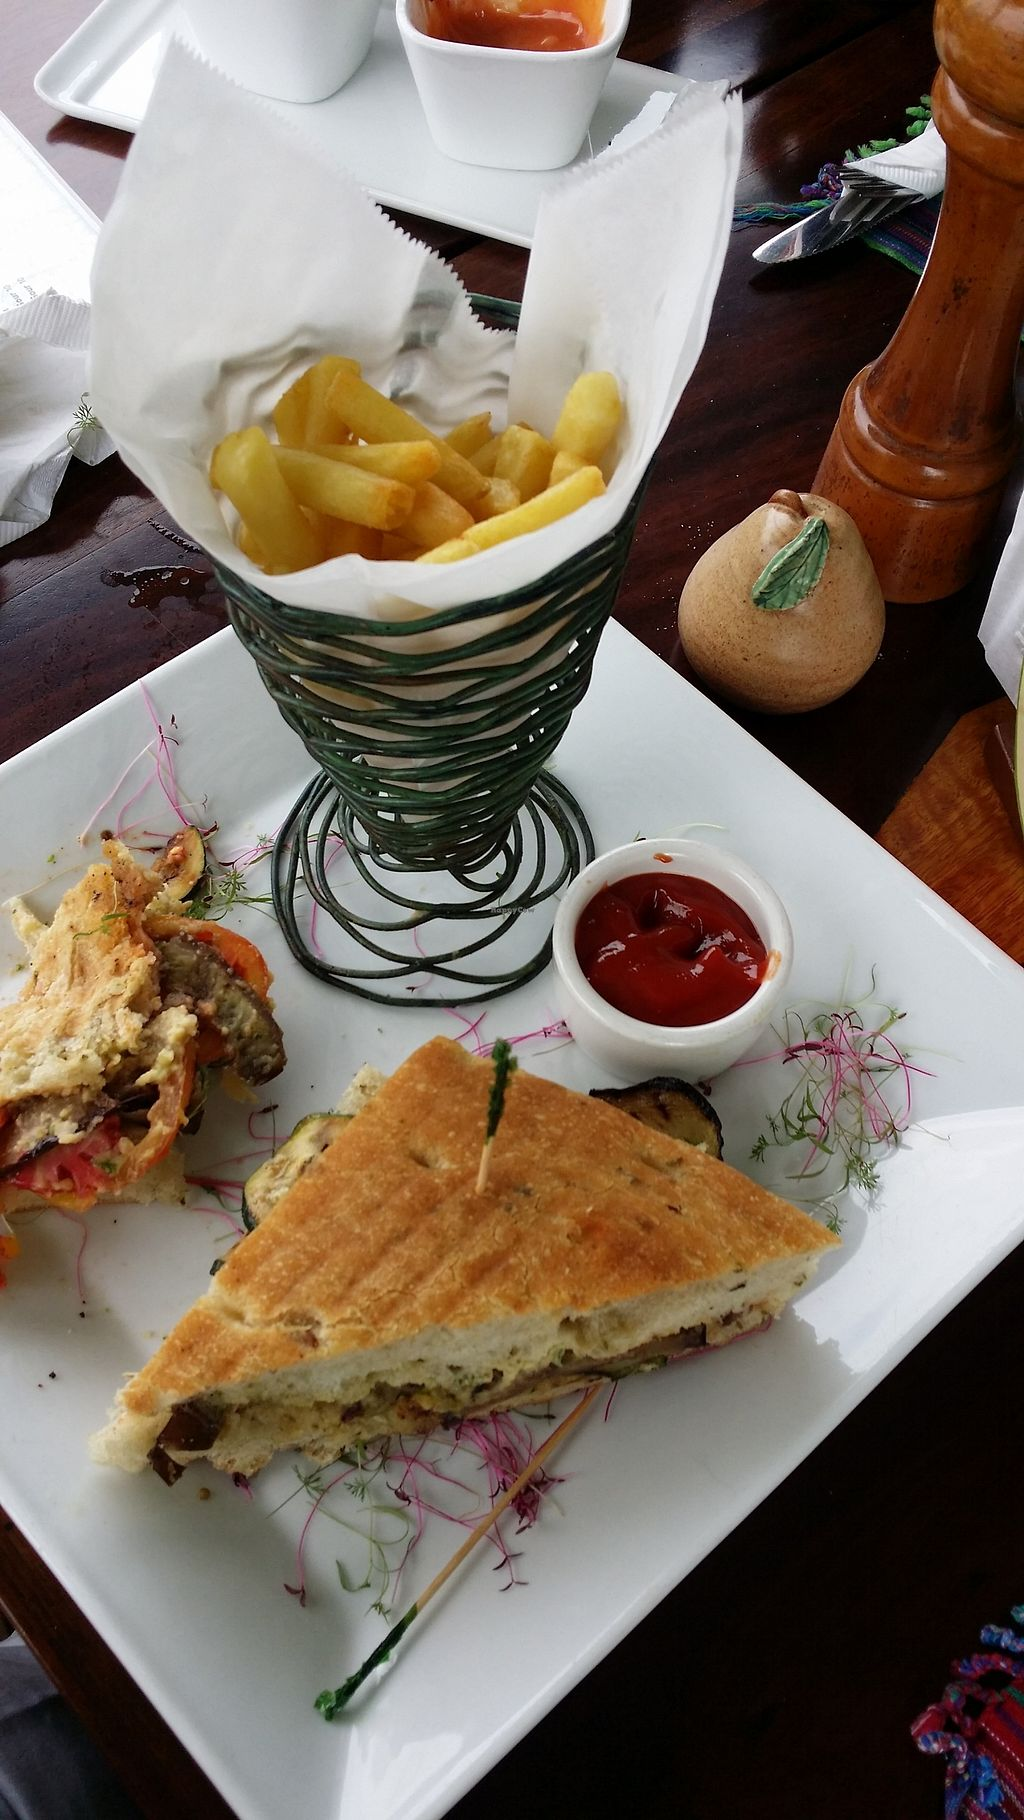 """Photo of The Guava Limb Restaurant & Cafe  by <a href=""""/members/profile/mmuqtasid"""">mmuqtasid</a> <br/>Vegetable panini <br/> July 3, 2017  - <a href='/contact/abuse/image/95012/276210'>Report</a>"""